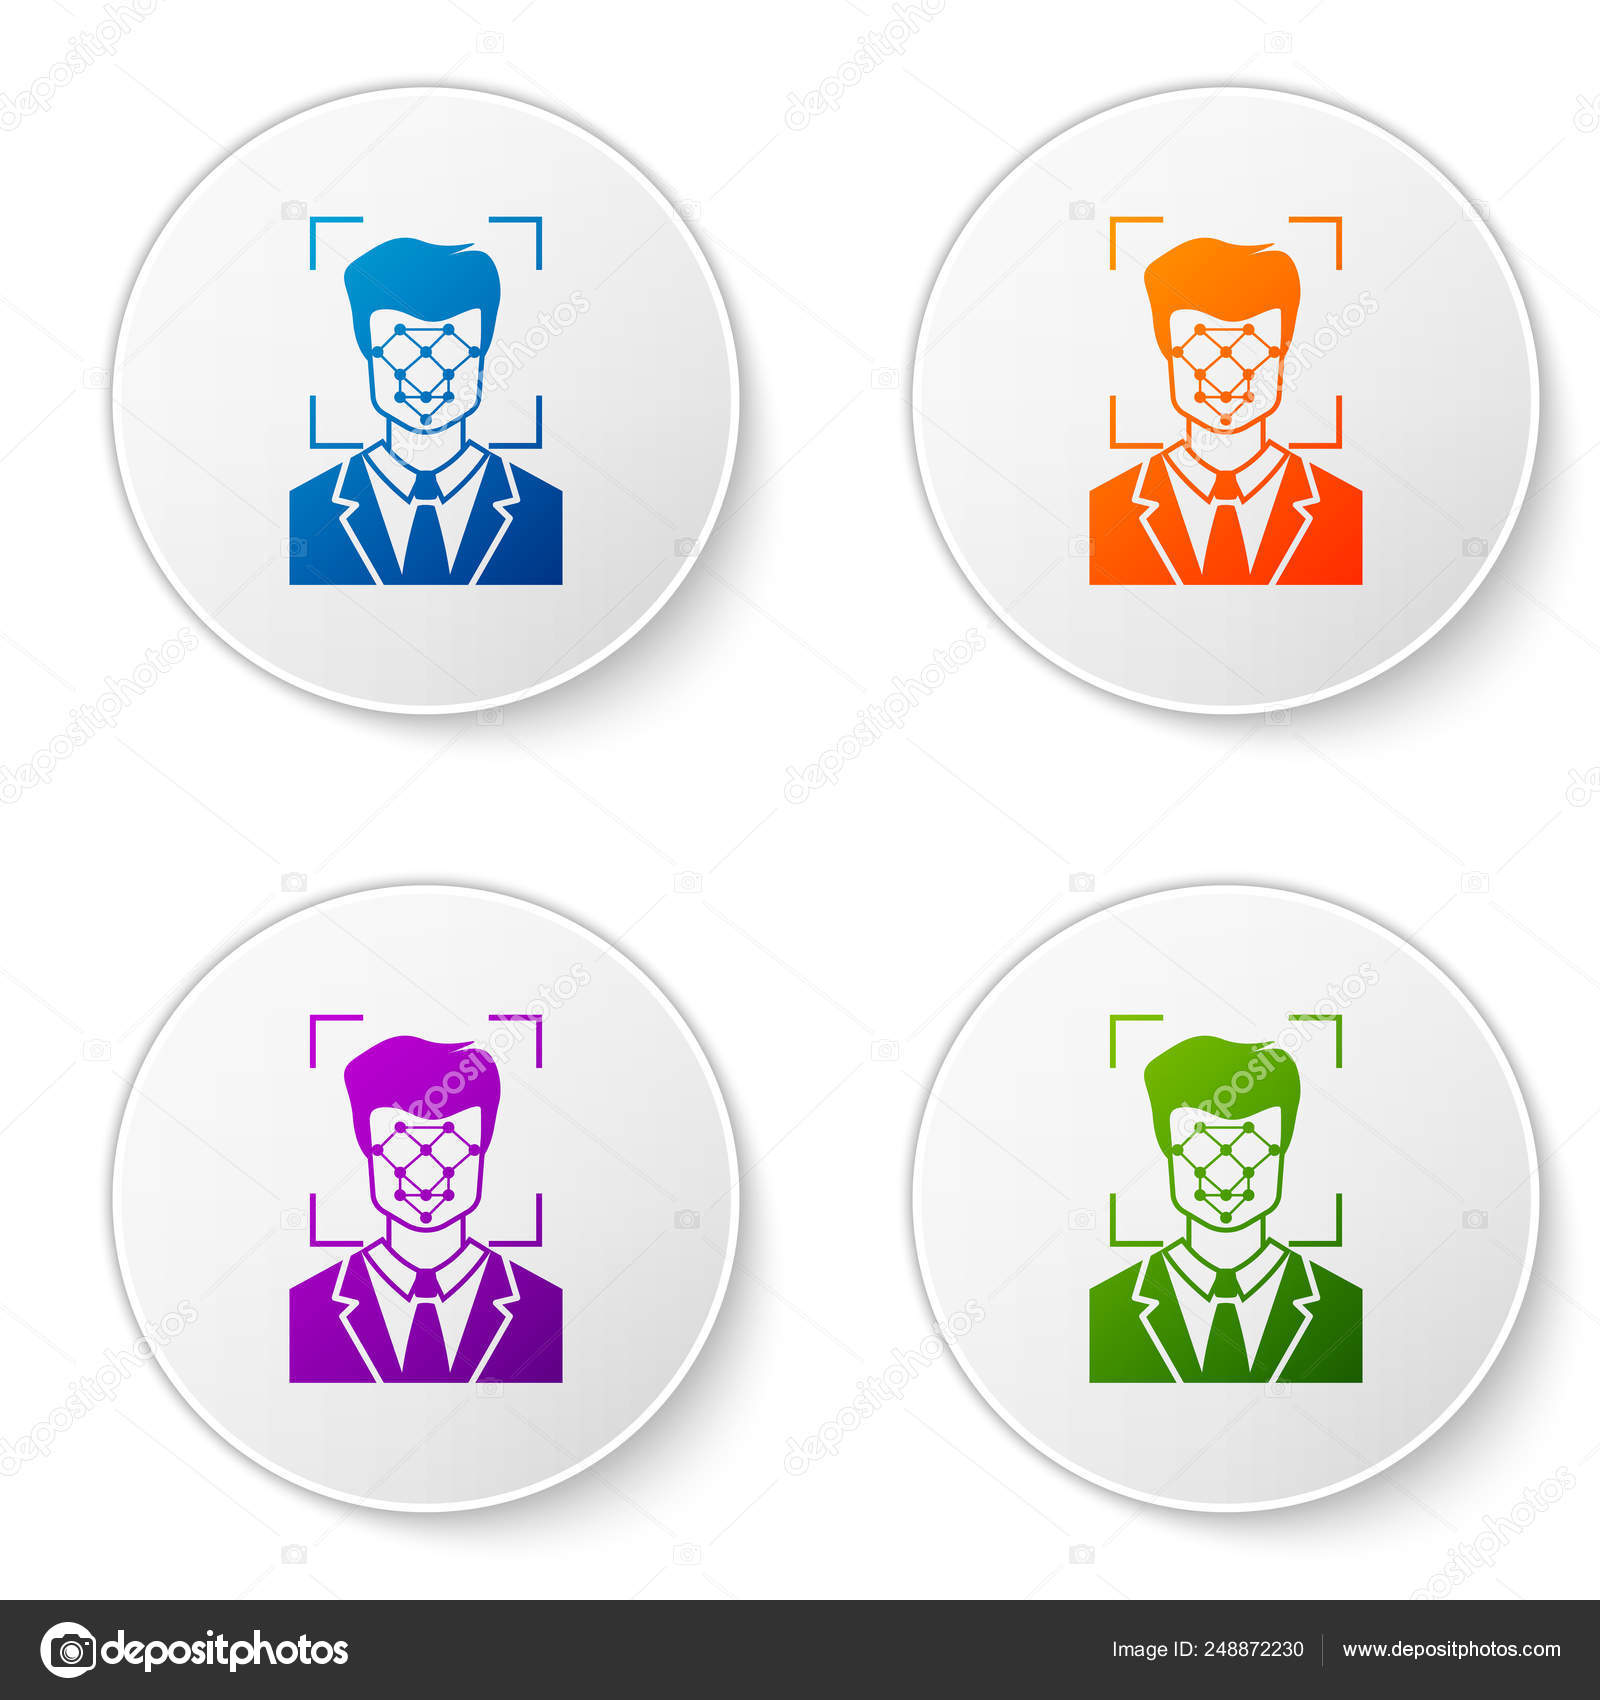 Color Face recognition icon isolated on white background